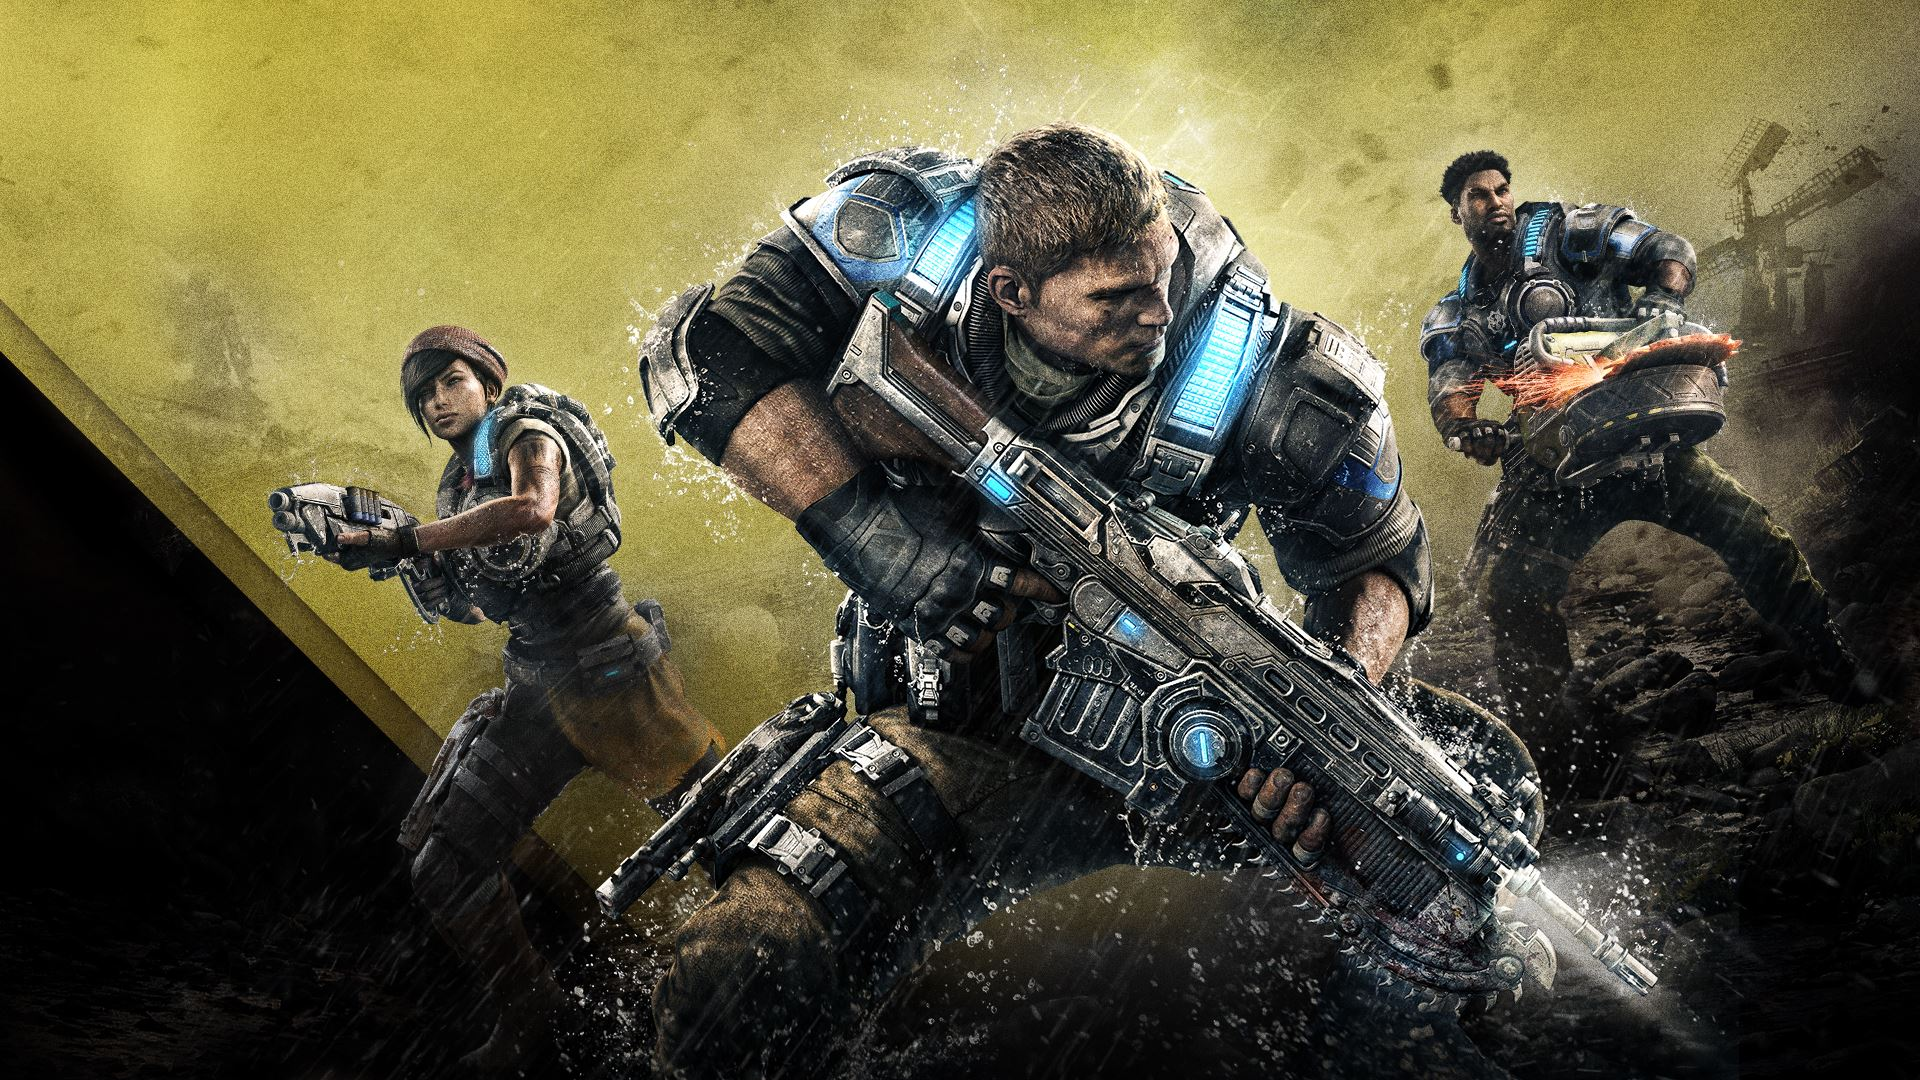 Gears Of War 4 Possibly Largest Xbox One Game To Date Requires